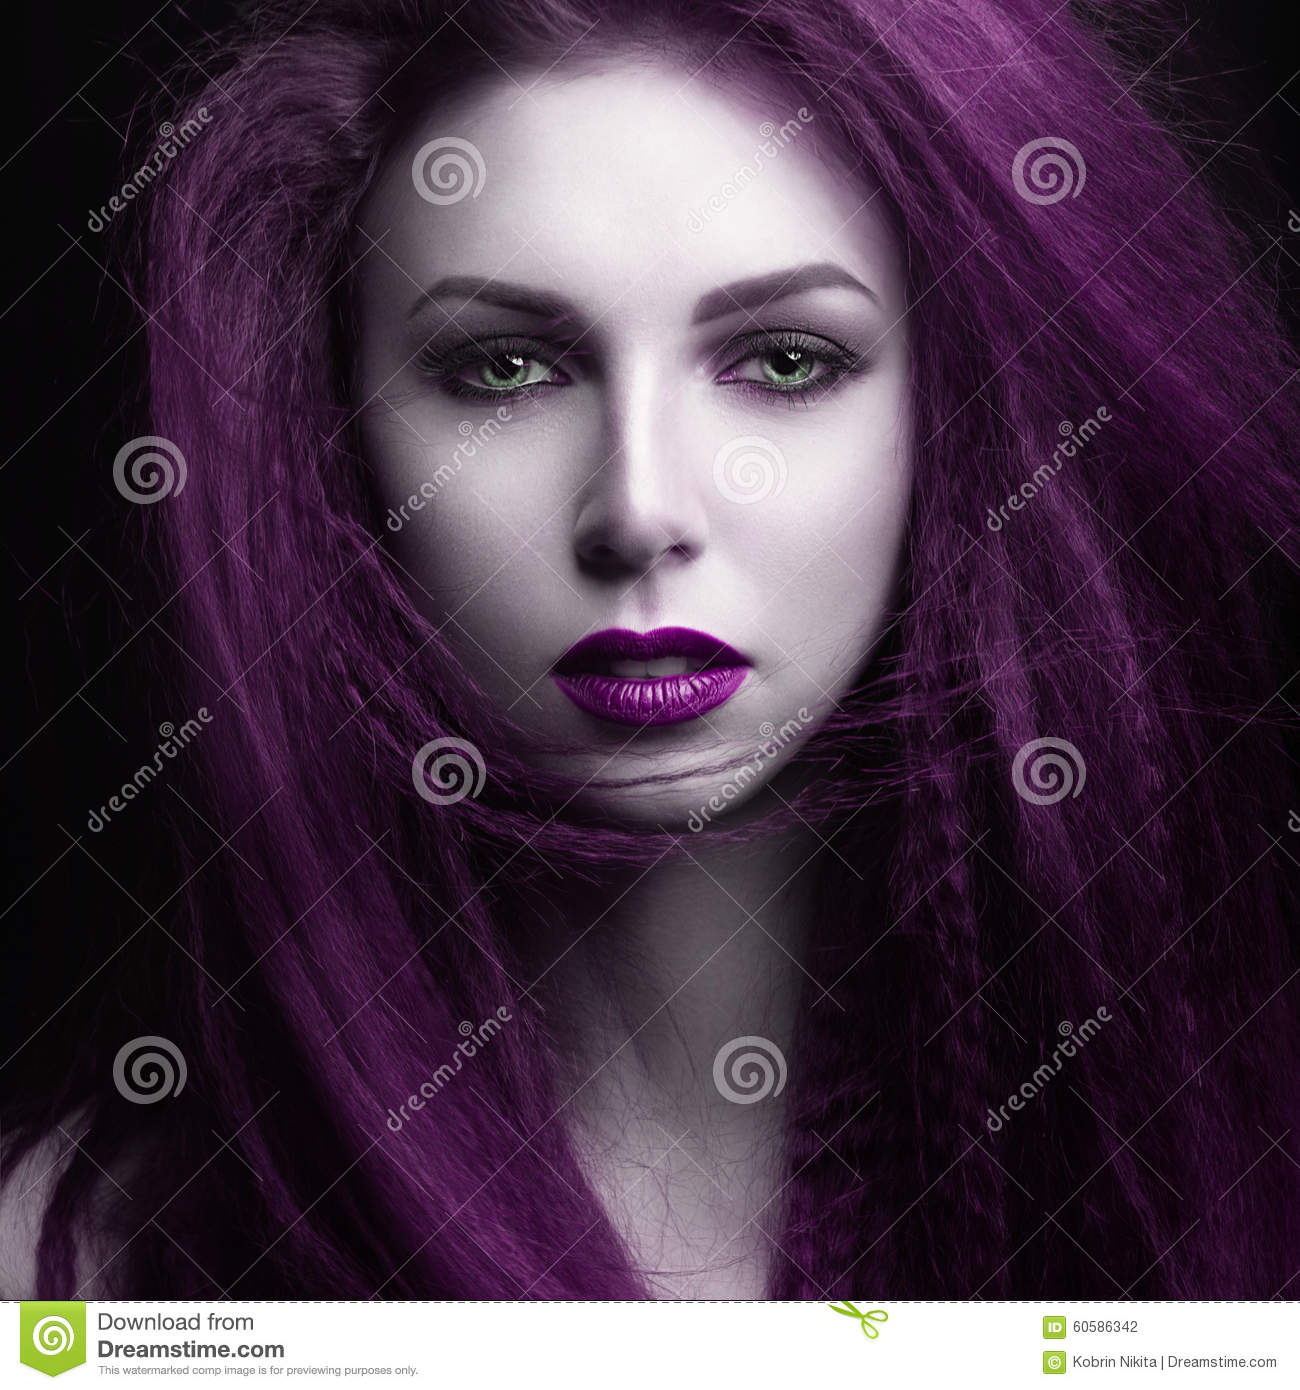 the girl with pale skin and purple hair in the form of a